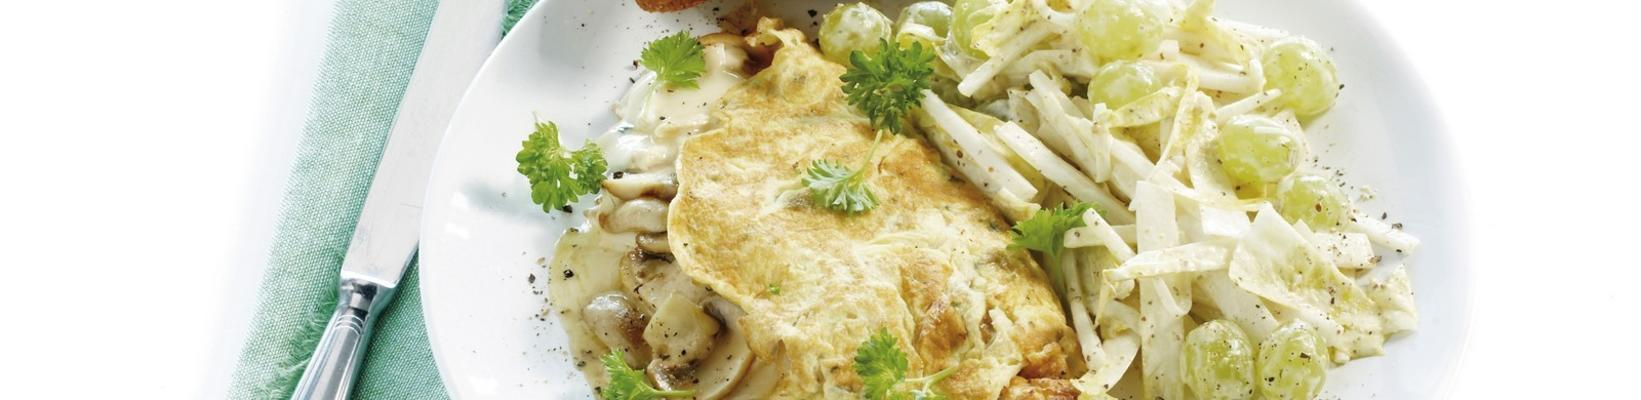 french omelette with chicory salad